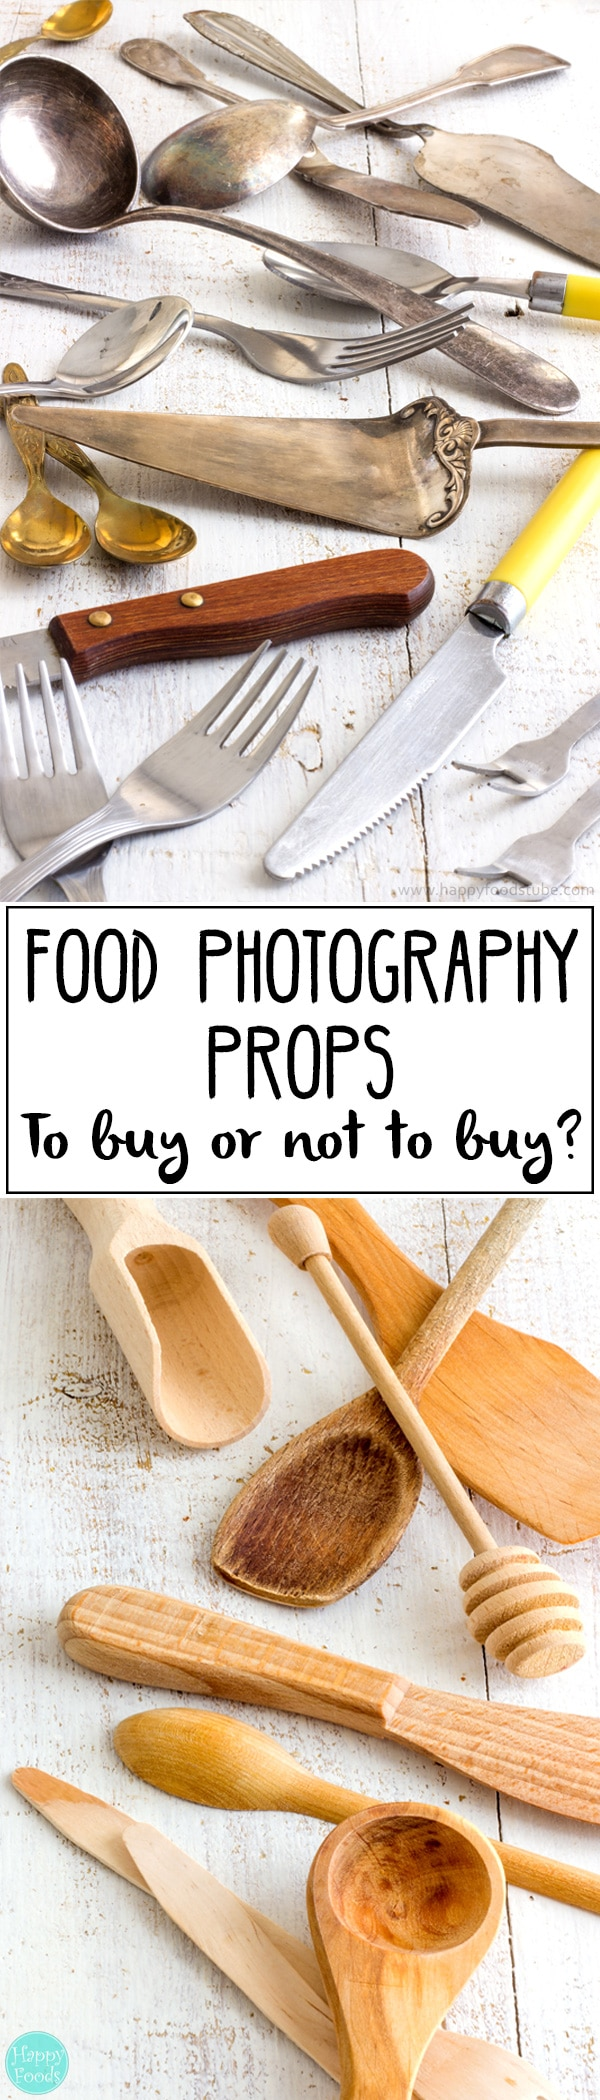 Ultimate guide to Food Photography Props with tips, tricks & money saving ideas! Best everyday affordable food photo props! | happyfoodstube.com